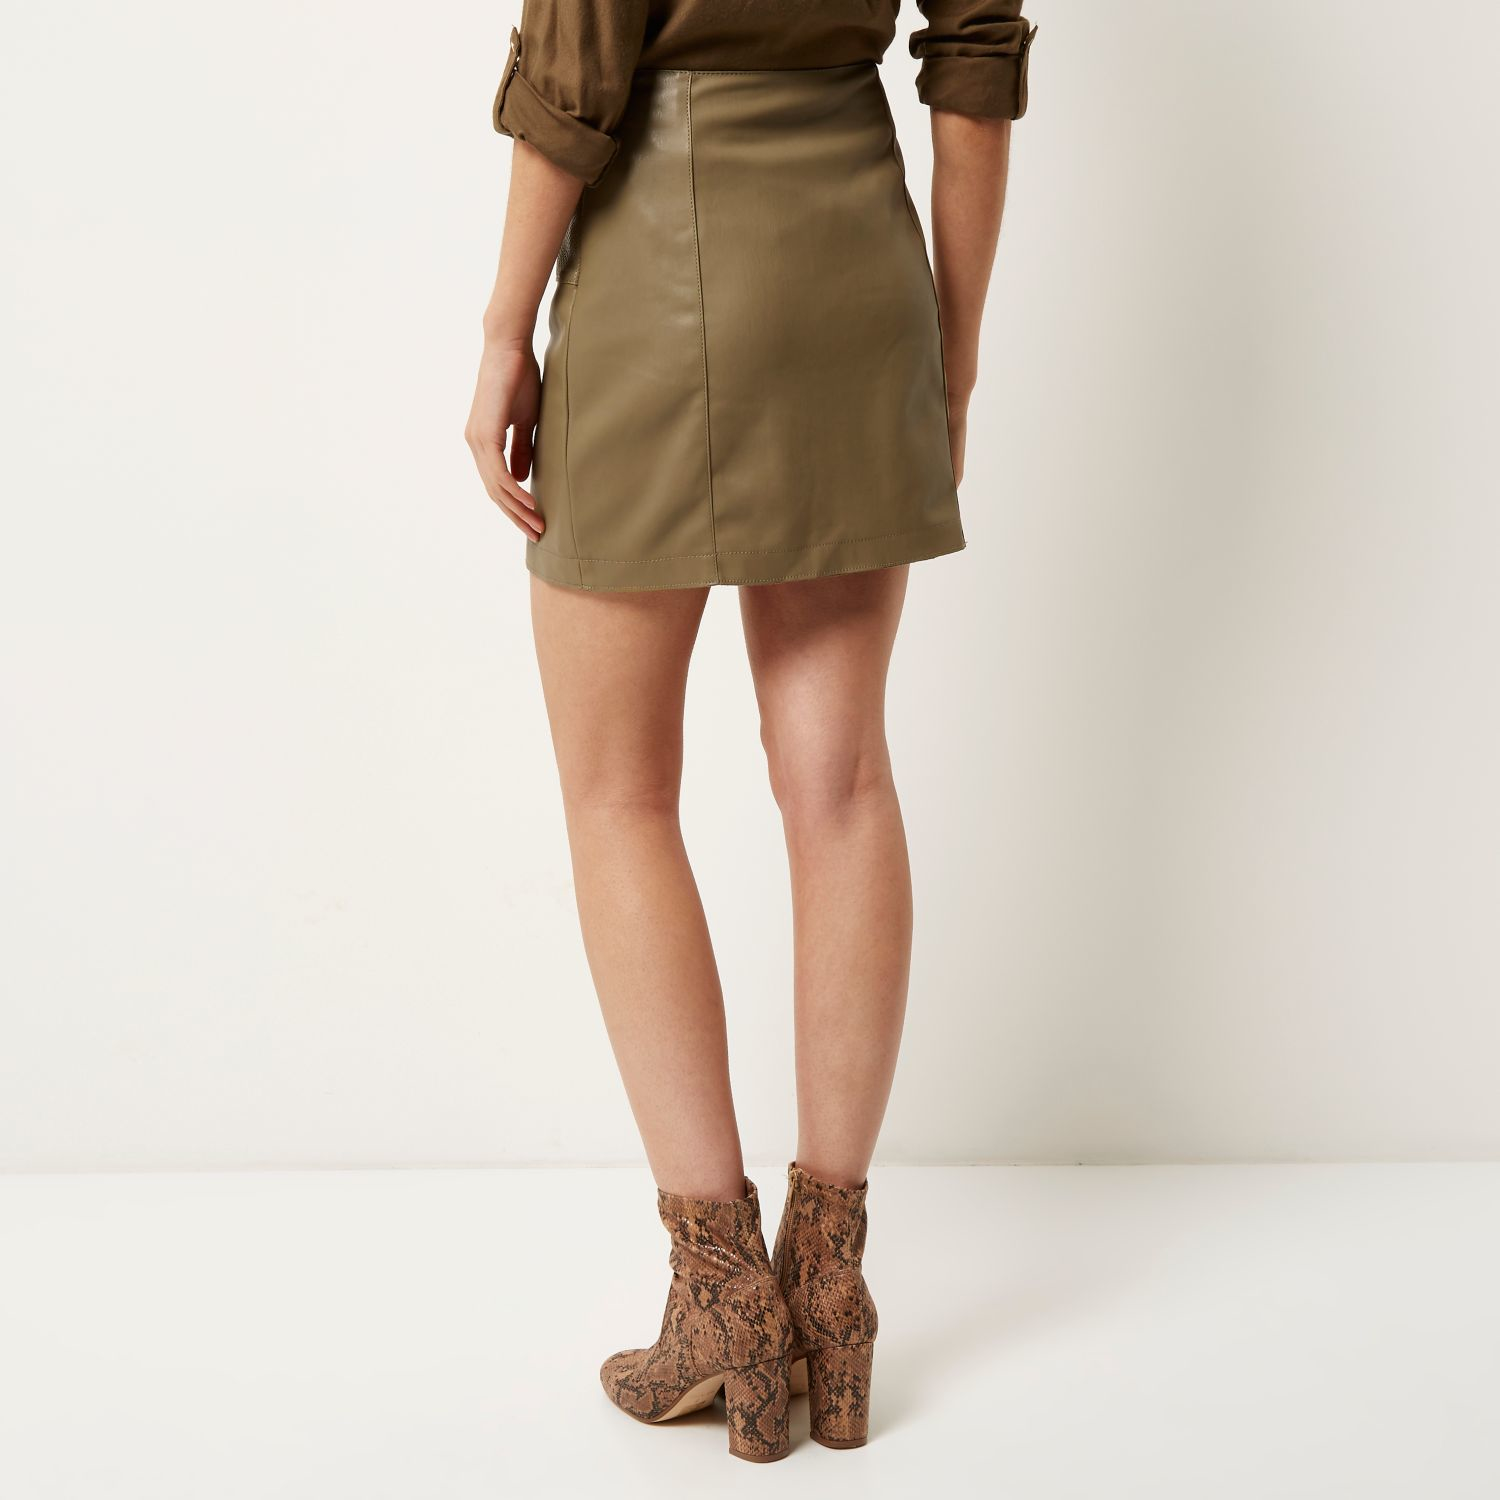 River island Green Leather Look Button Up Mini Skirt in Brown | Lyst